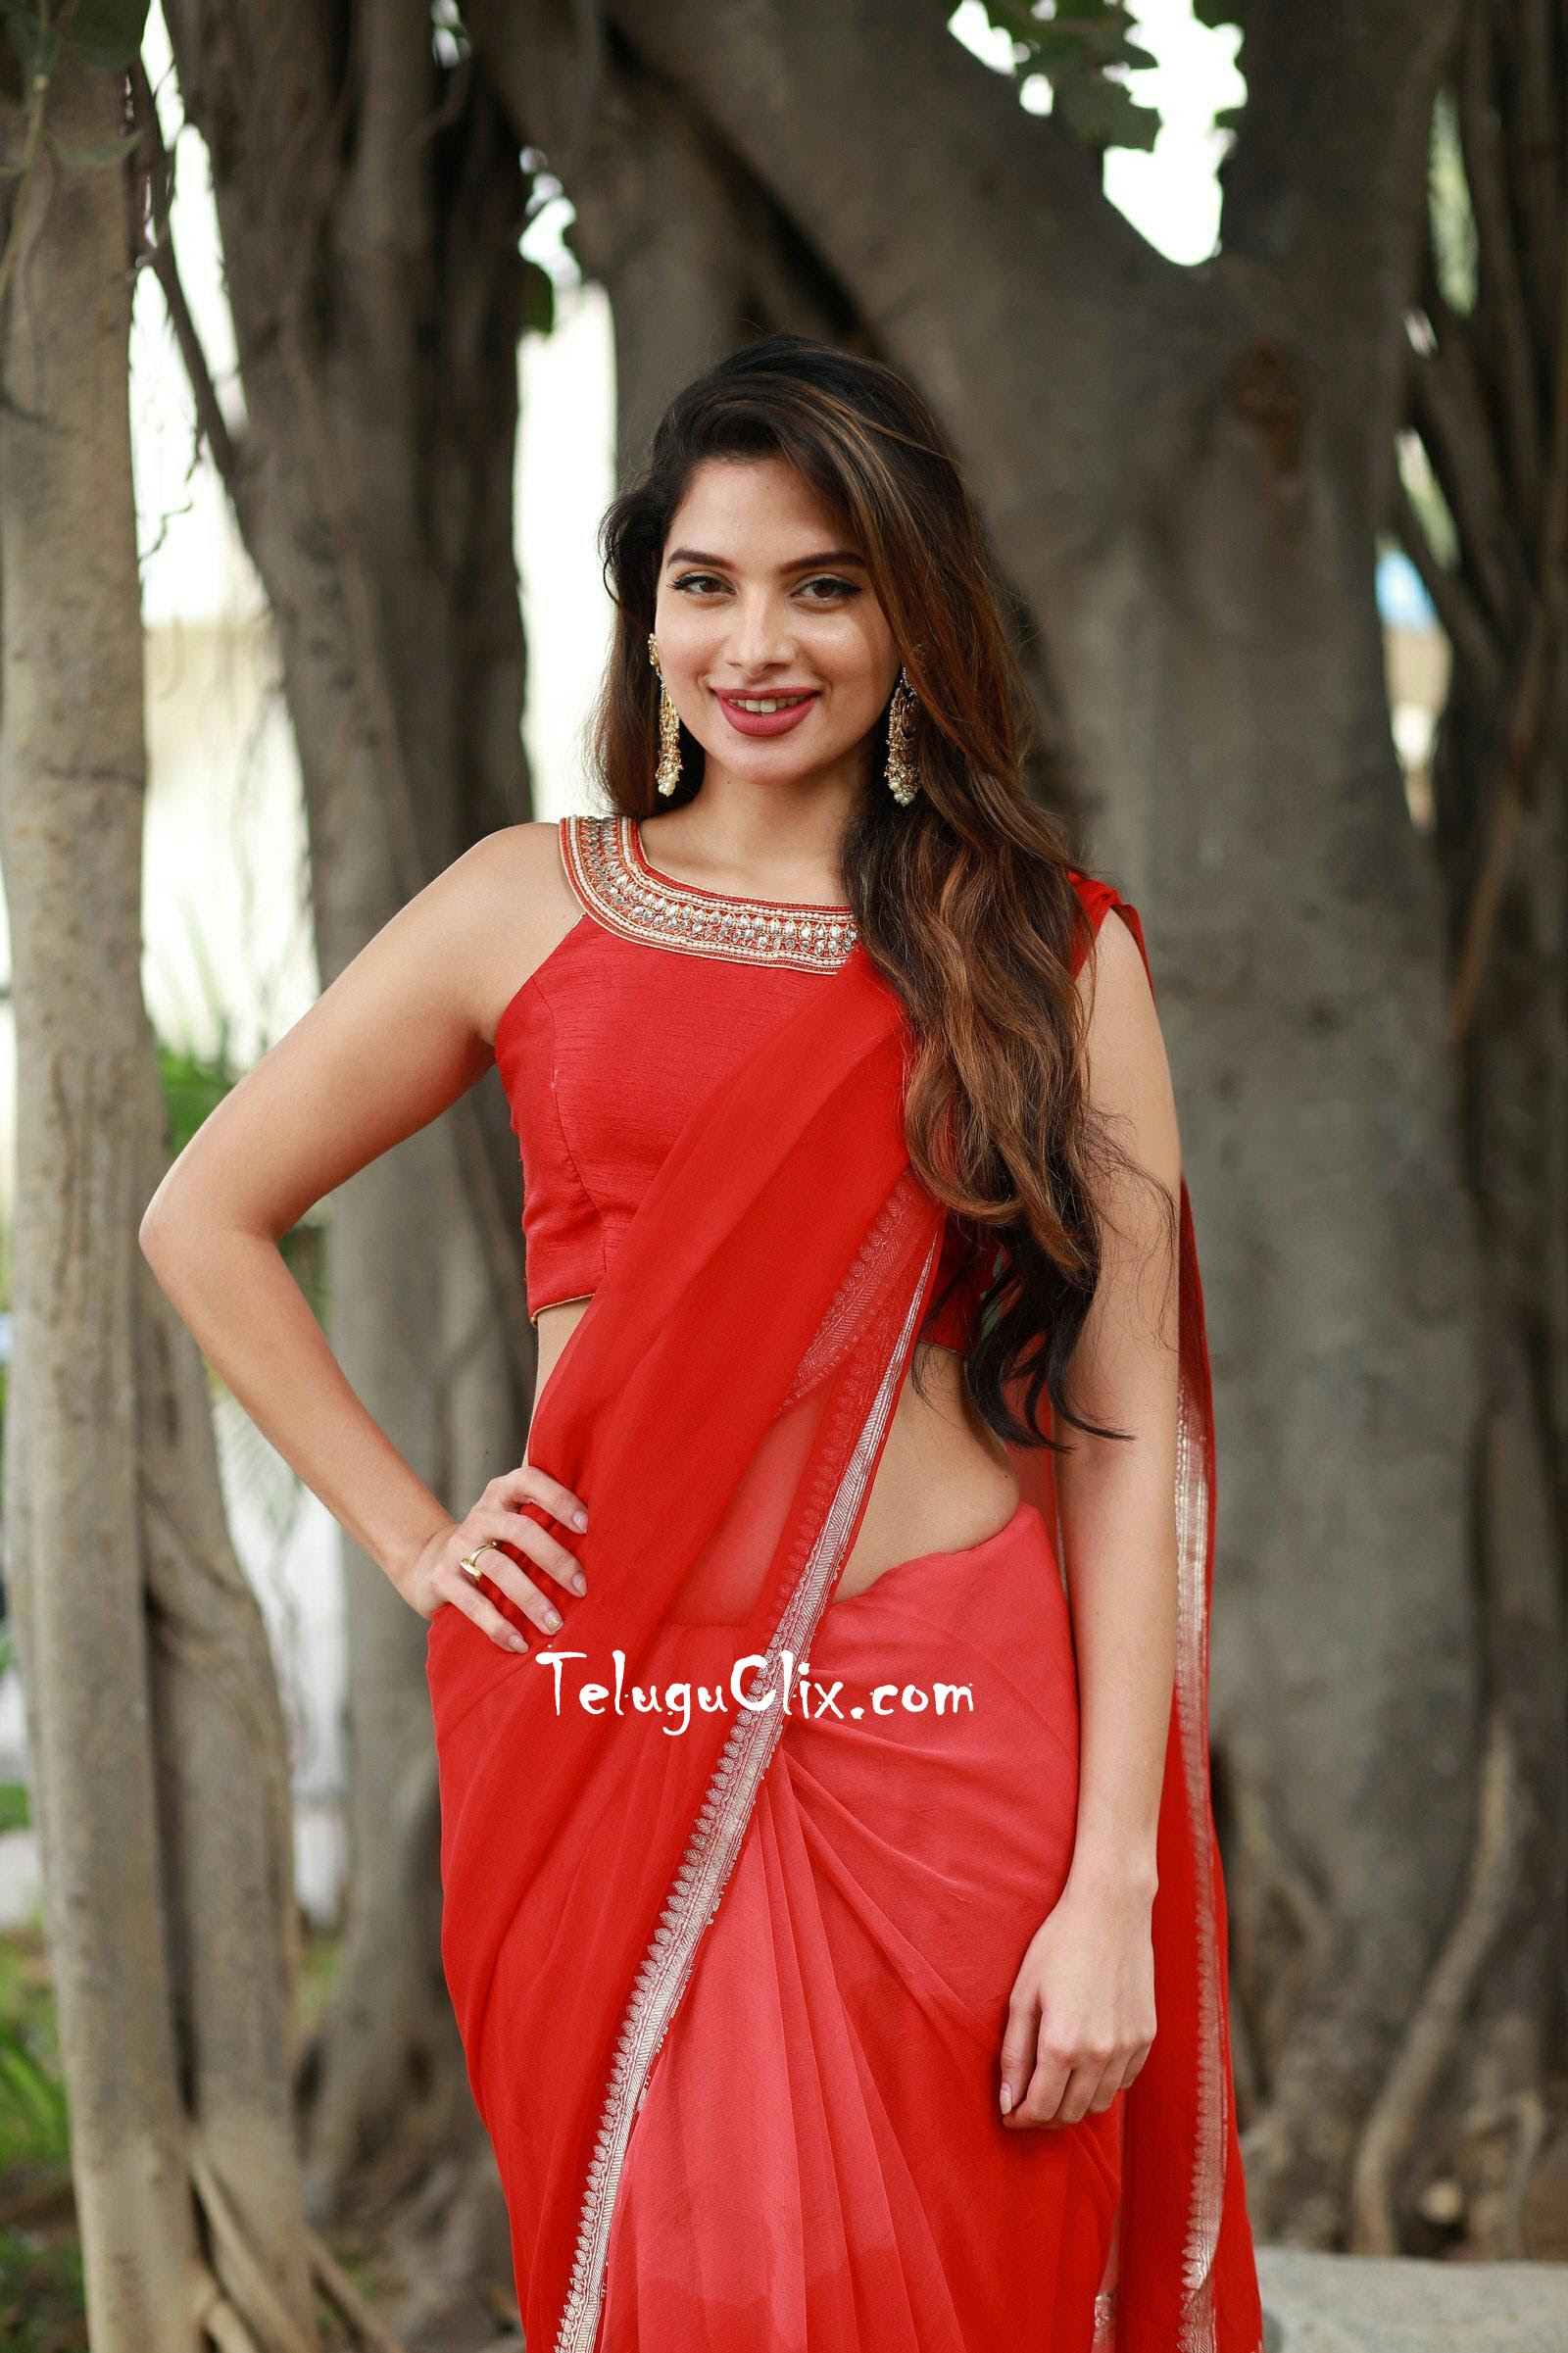 Tanya Hope In Saree Hd Photos Red Latest New Hq Stills Hot Pics